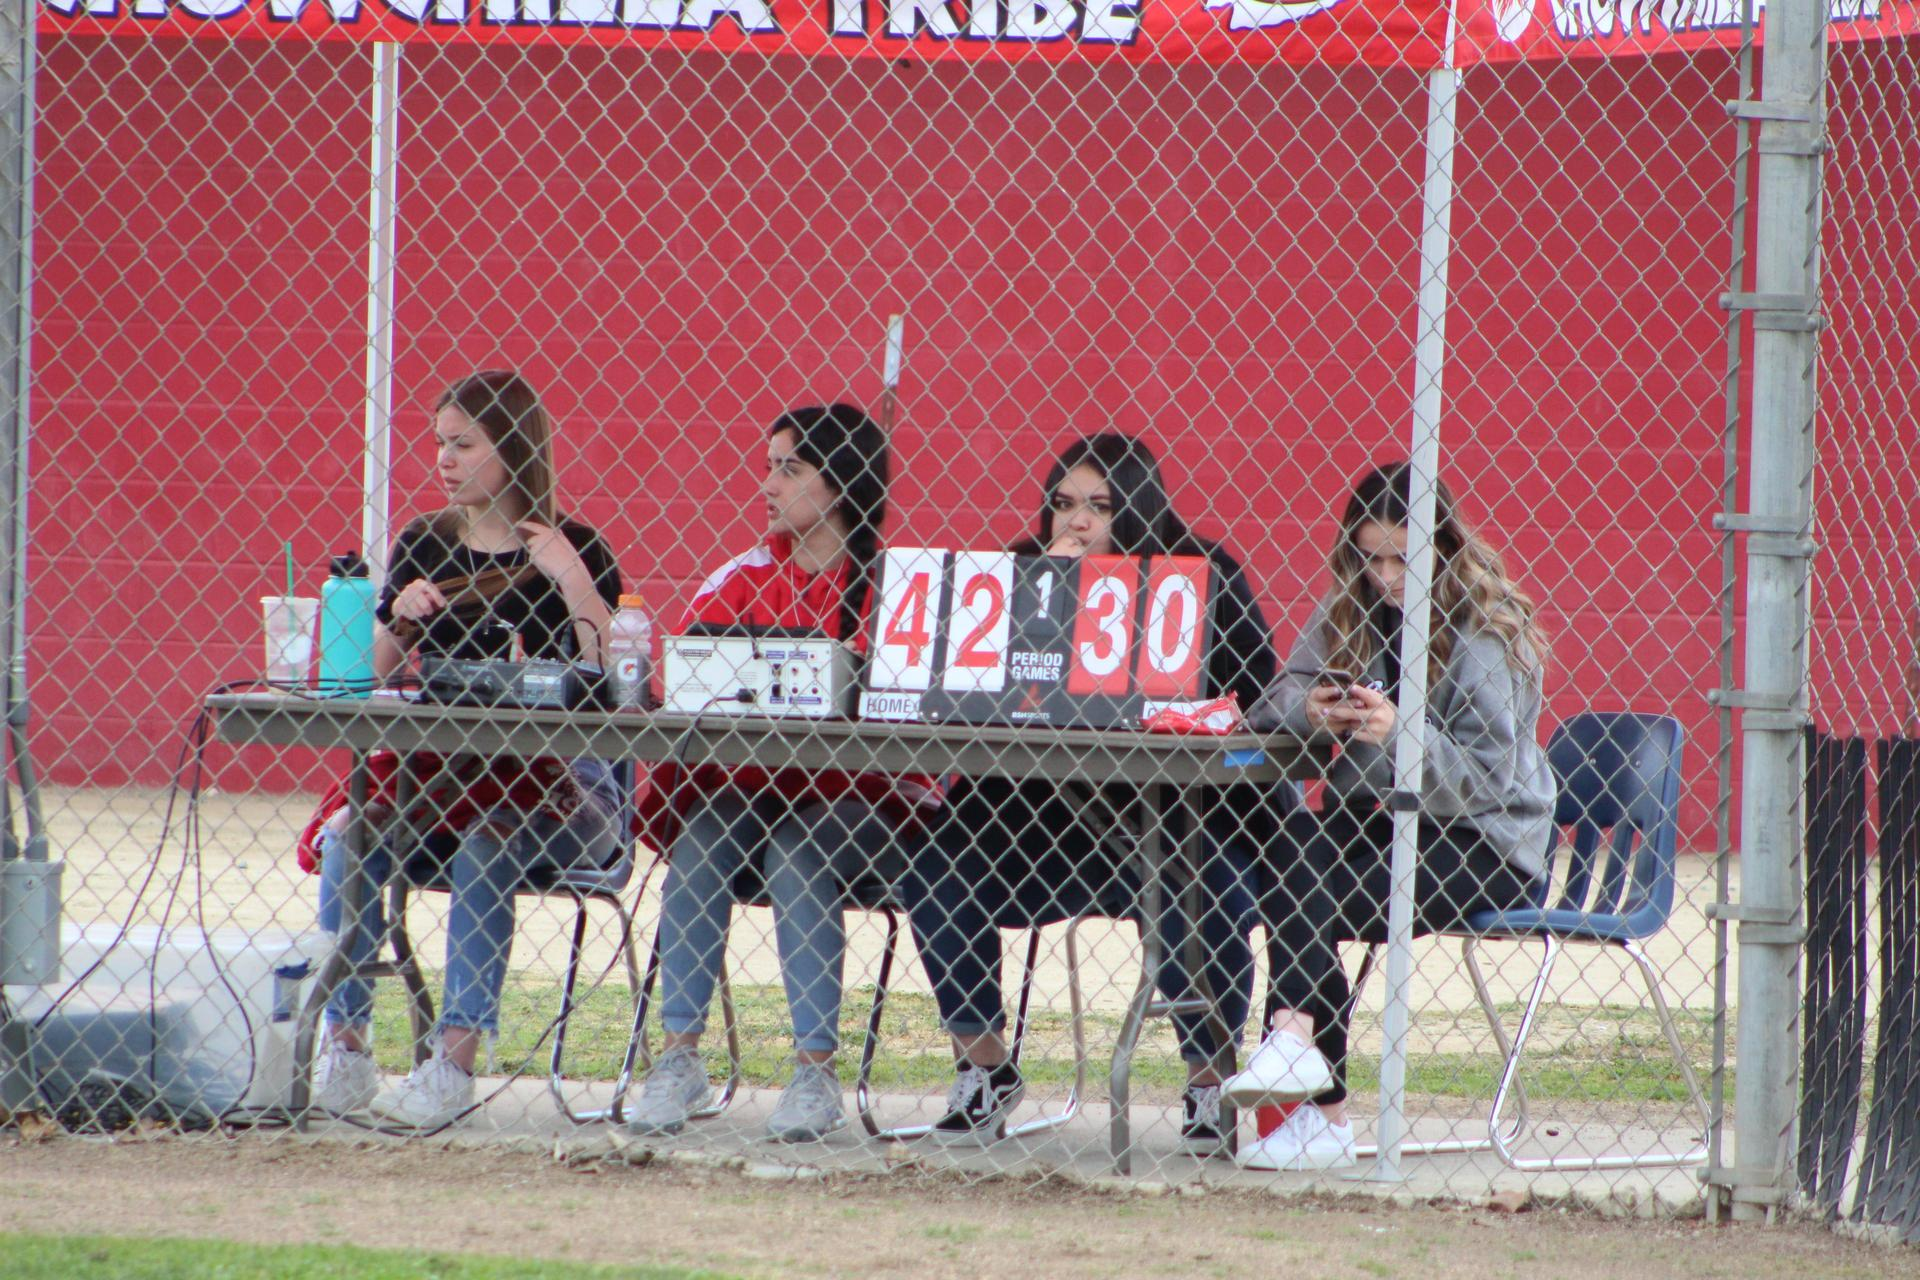 scorekeepers and the announcer